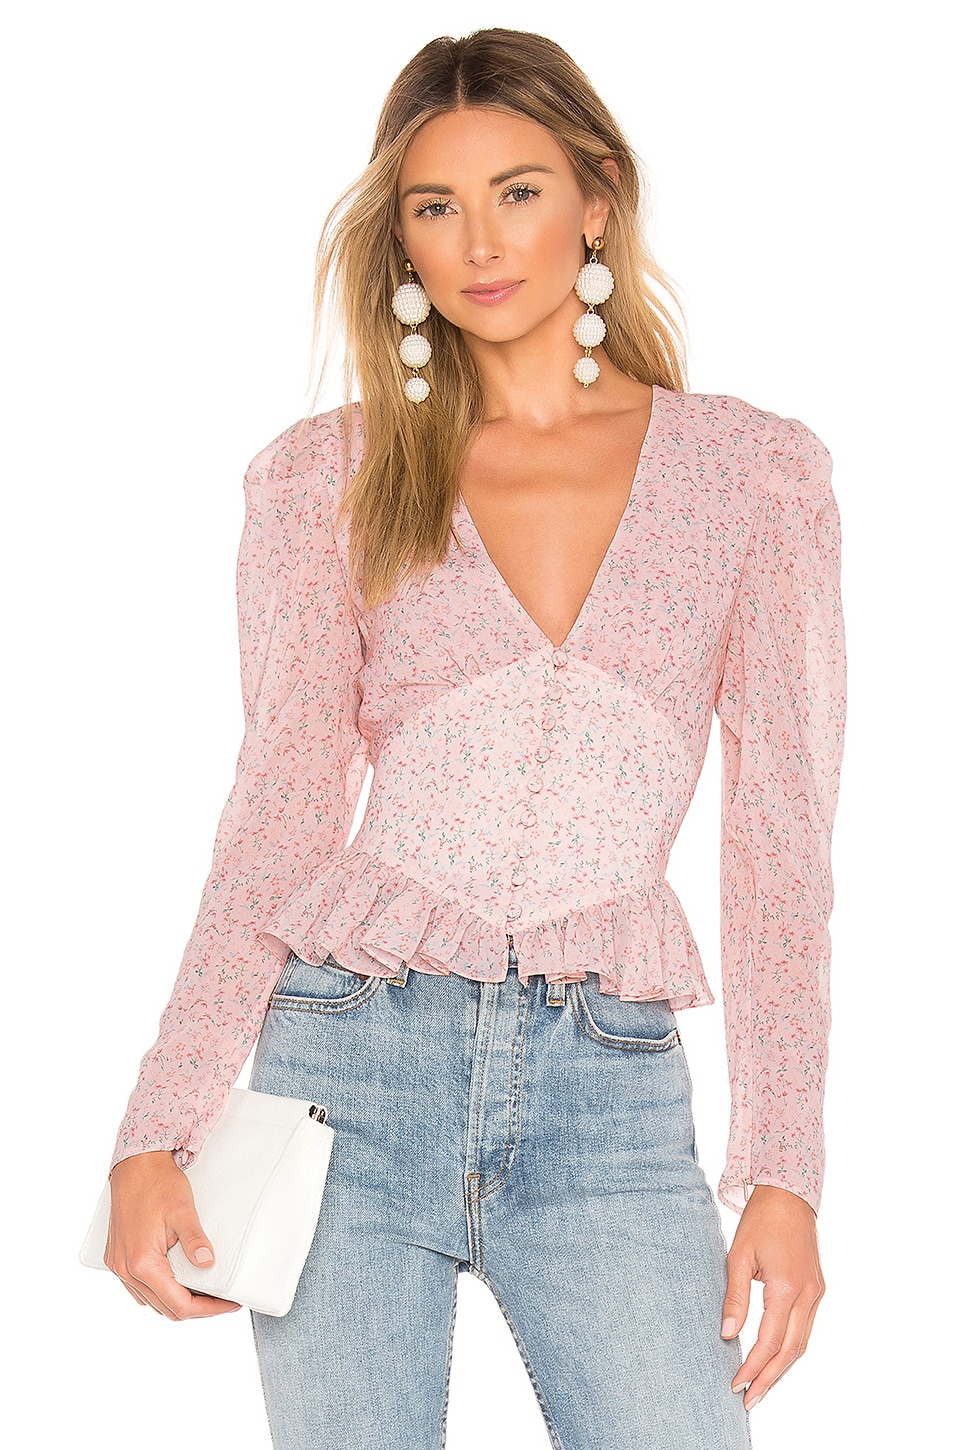 Divine Héritage Tops DIVINE HERITAGE RUFFLE WAIST BUTTON UP IN PINK.